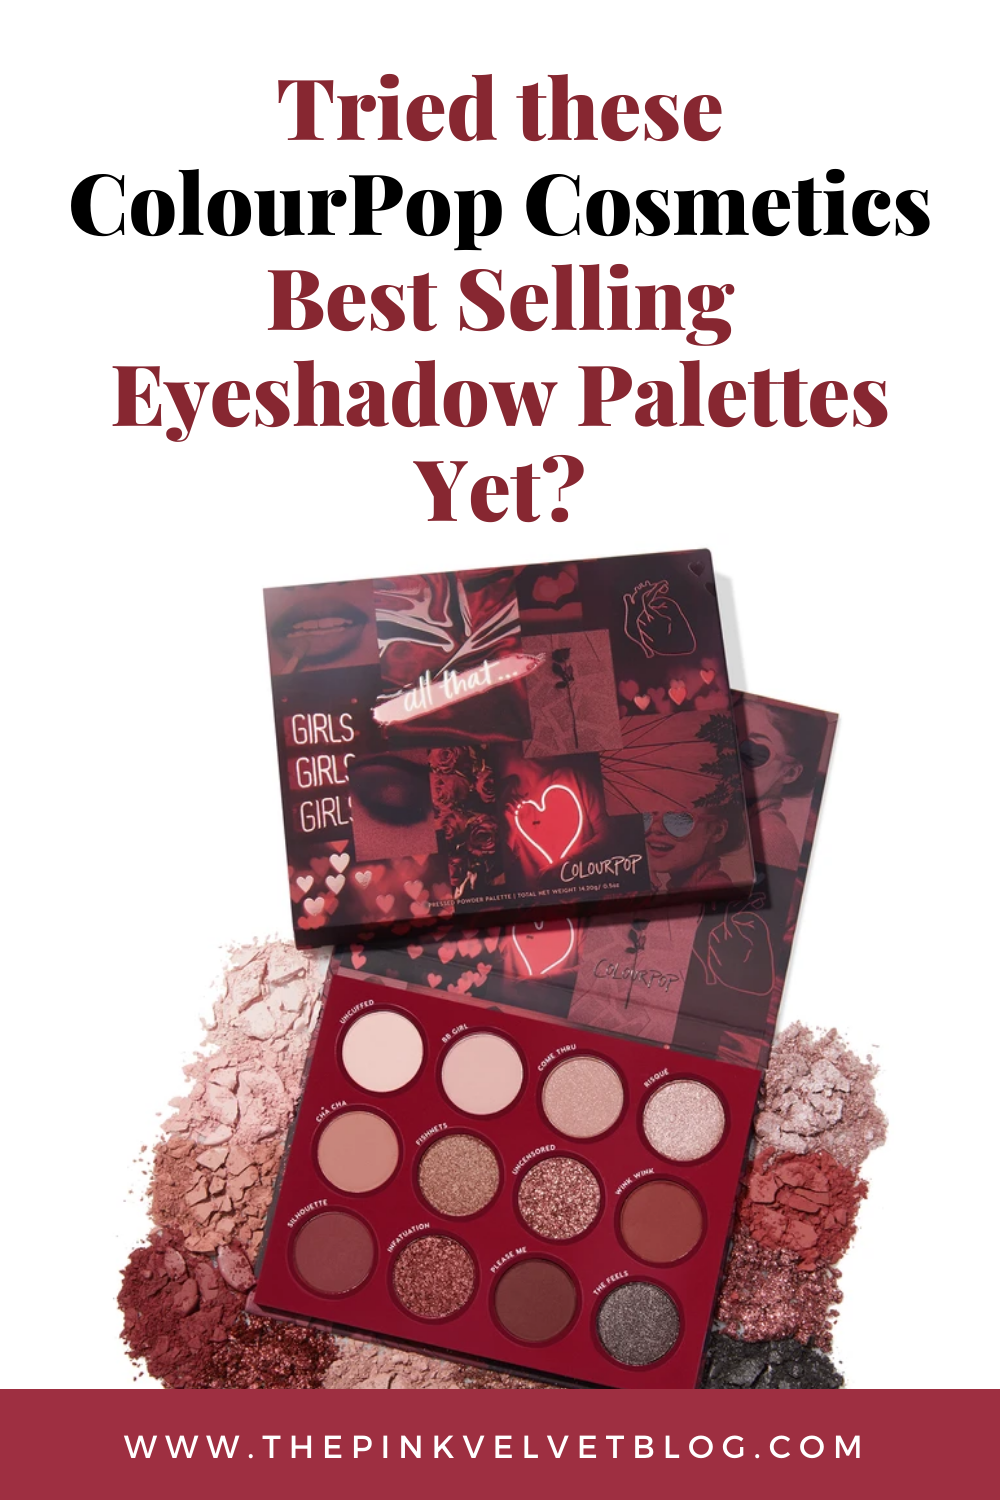 Tried these ColourPop Cosmetics Best Eyeshadow Palettes Yet?